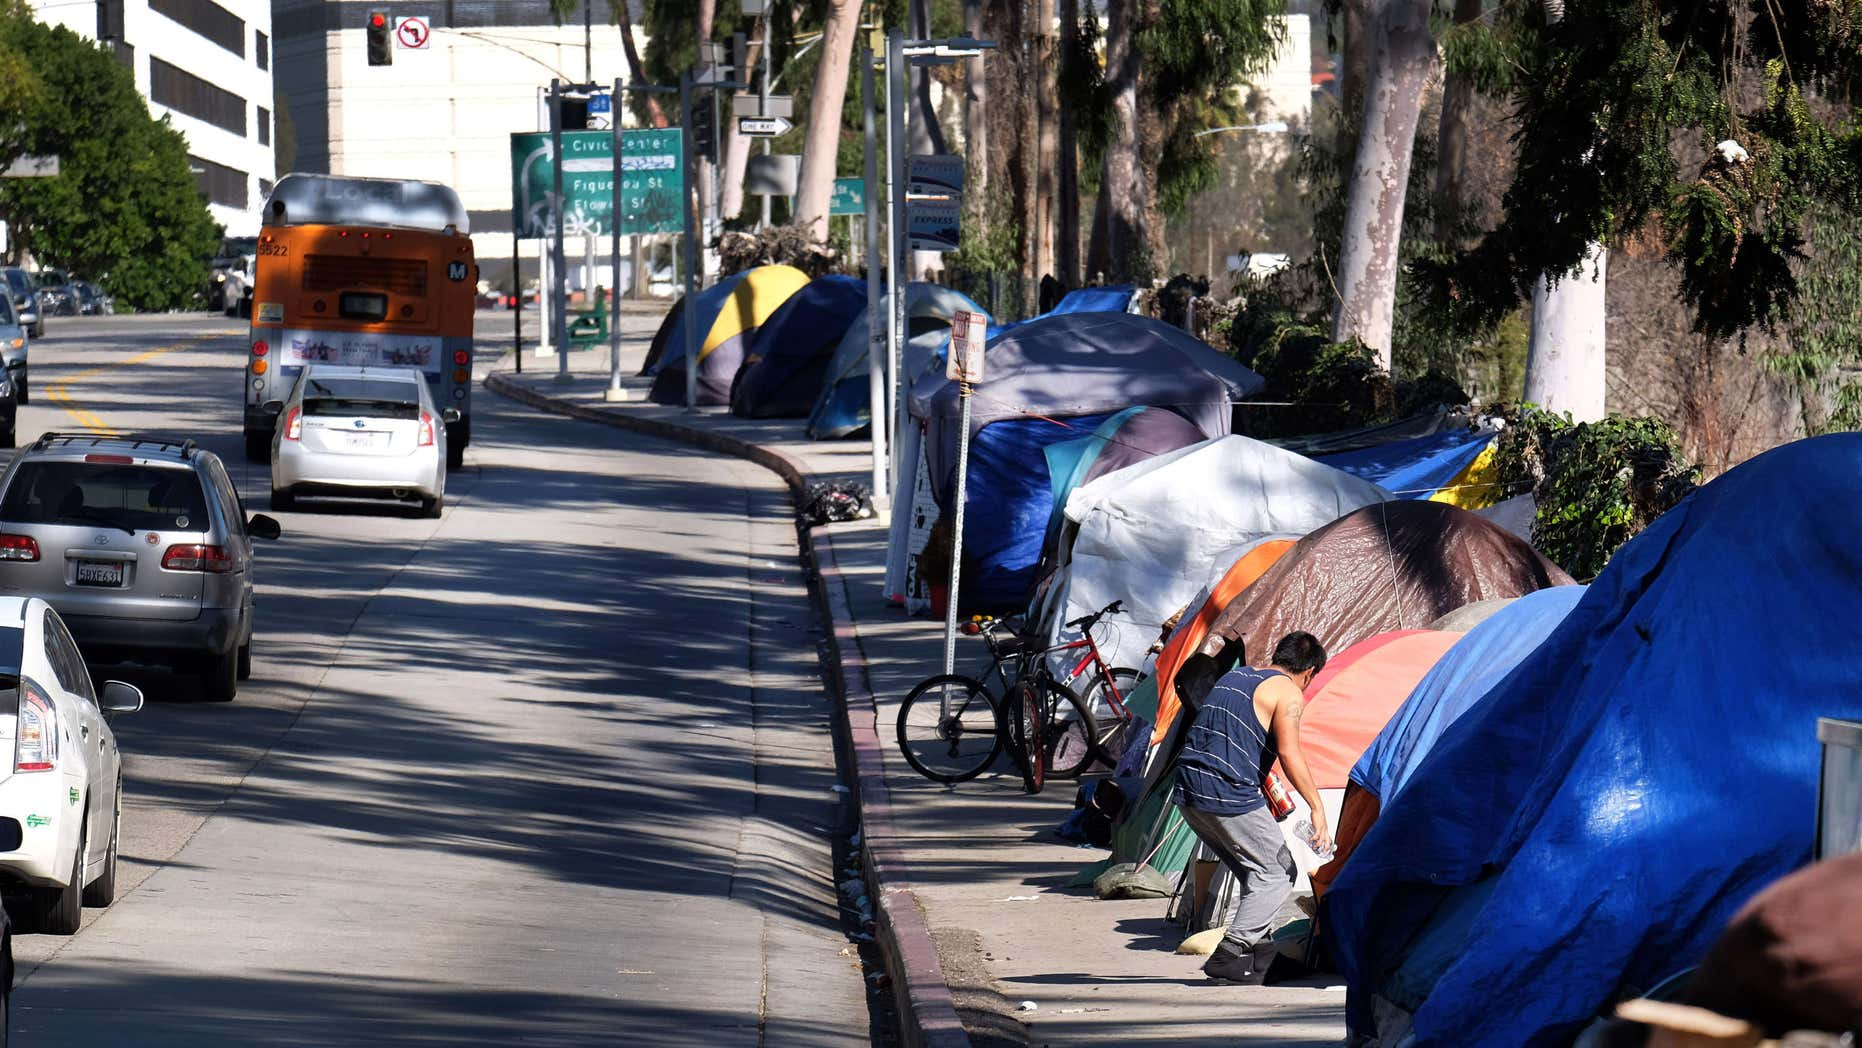 FILE - In this Jan. 26, 2016, file photo, tents from a homeless encampment line a street in downtown Los Angeles.